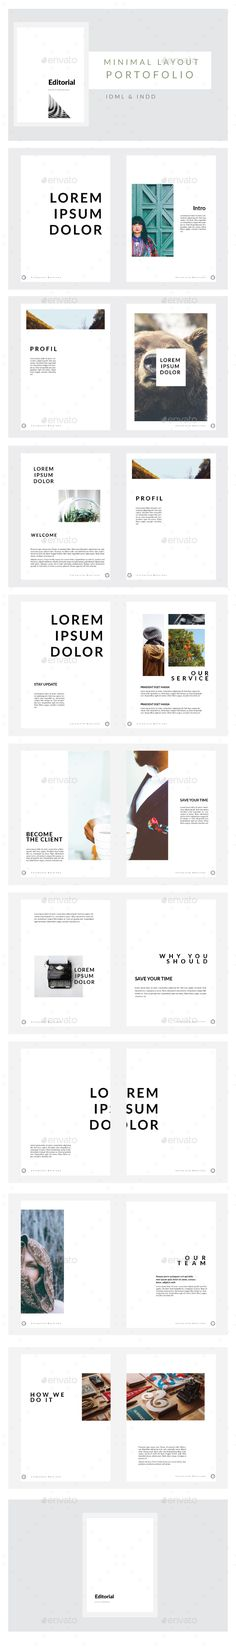 """Minimal Portofolio Layout Multipurpose  — InDesign Template <a class=""""pintag searchlink"""" data-query=""""%23booklet"""" data-type=""""hashtag"""" href=""""/search/?q=%23booklet&rs=hashtag"""" rel=""""nofollow"""" title=""""#booklet search Pinterest"""">#booklet</a> <a class=""""pintag searchlink"""" data-query=""""%23customizable"""" data-type=""""hashtag"""" href=""""/search/?q=%23customizable&rs=hashtag"""" rel=""""nofollow"""" title=""""#customizable search Pinterest"""">#customizable</a> • Download ➝ <a href=""""https://graphicriver.net/item/minimal-portofolio-layout-multipurpose/15926373?ref=pxcr"""" rel=""""nofollow"""" target=""""_blank"""">graphicriver.net/...</a>"""